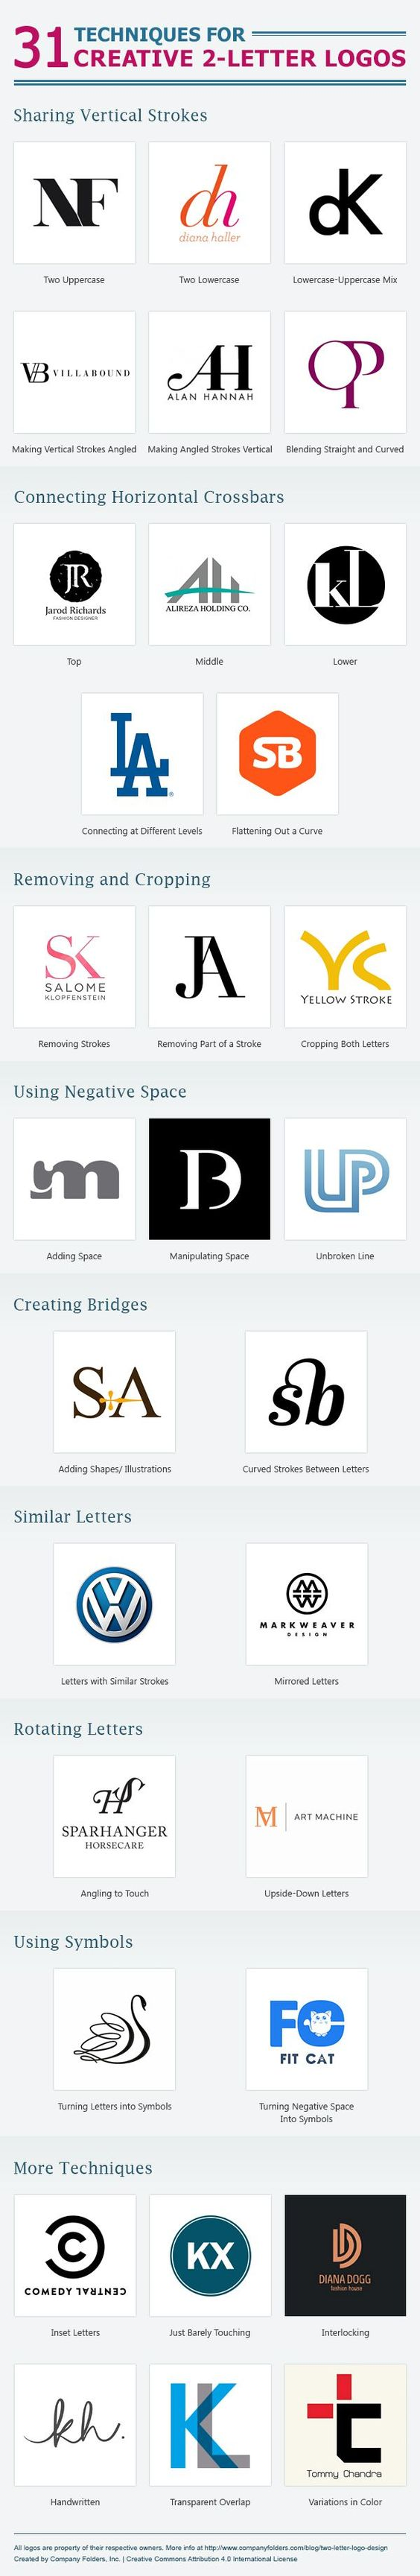 31 Techniques for Creative 2-Letter Logos #infographic #Logo #Graphic